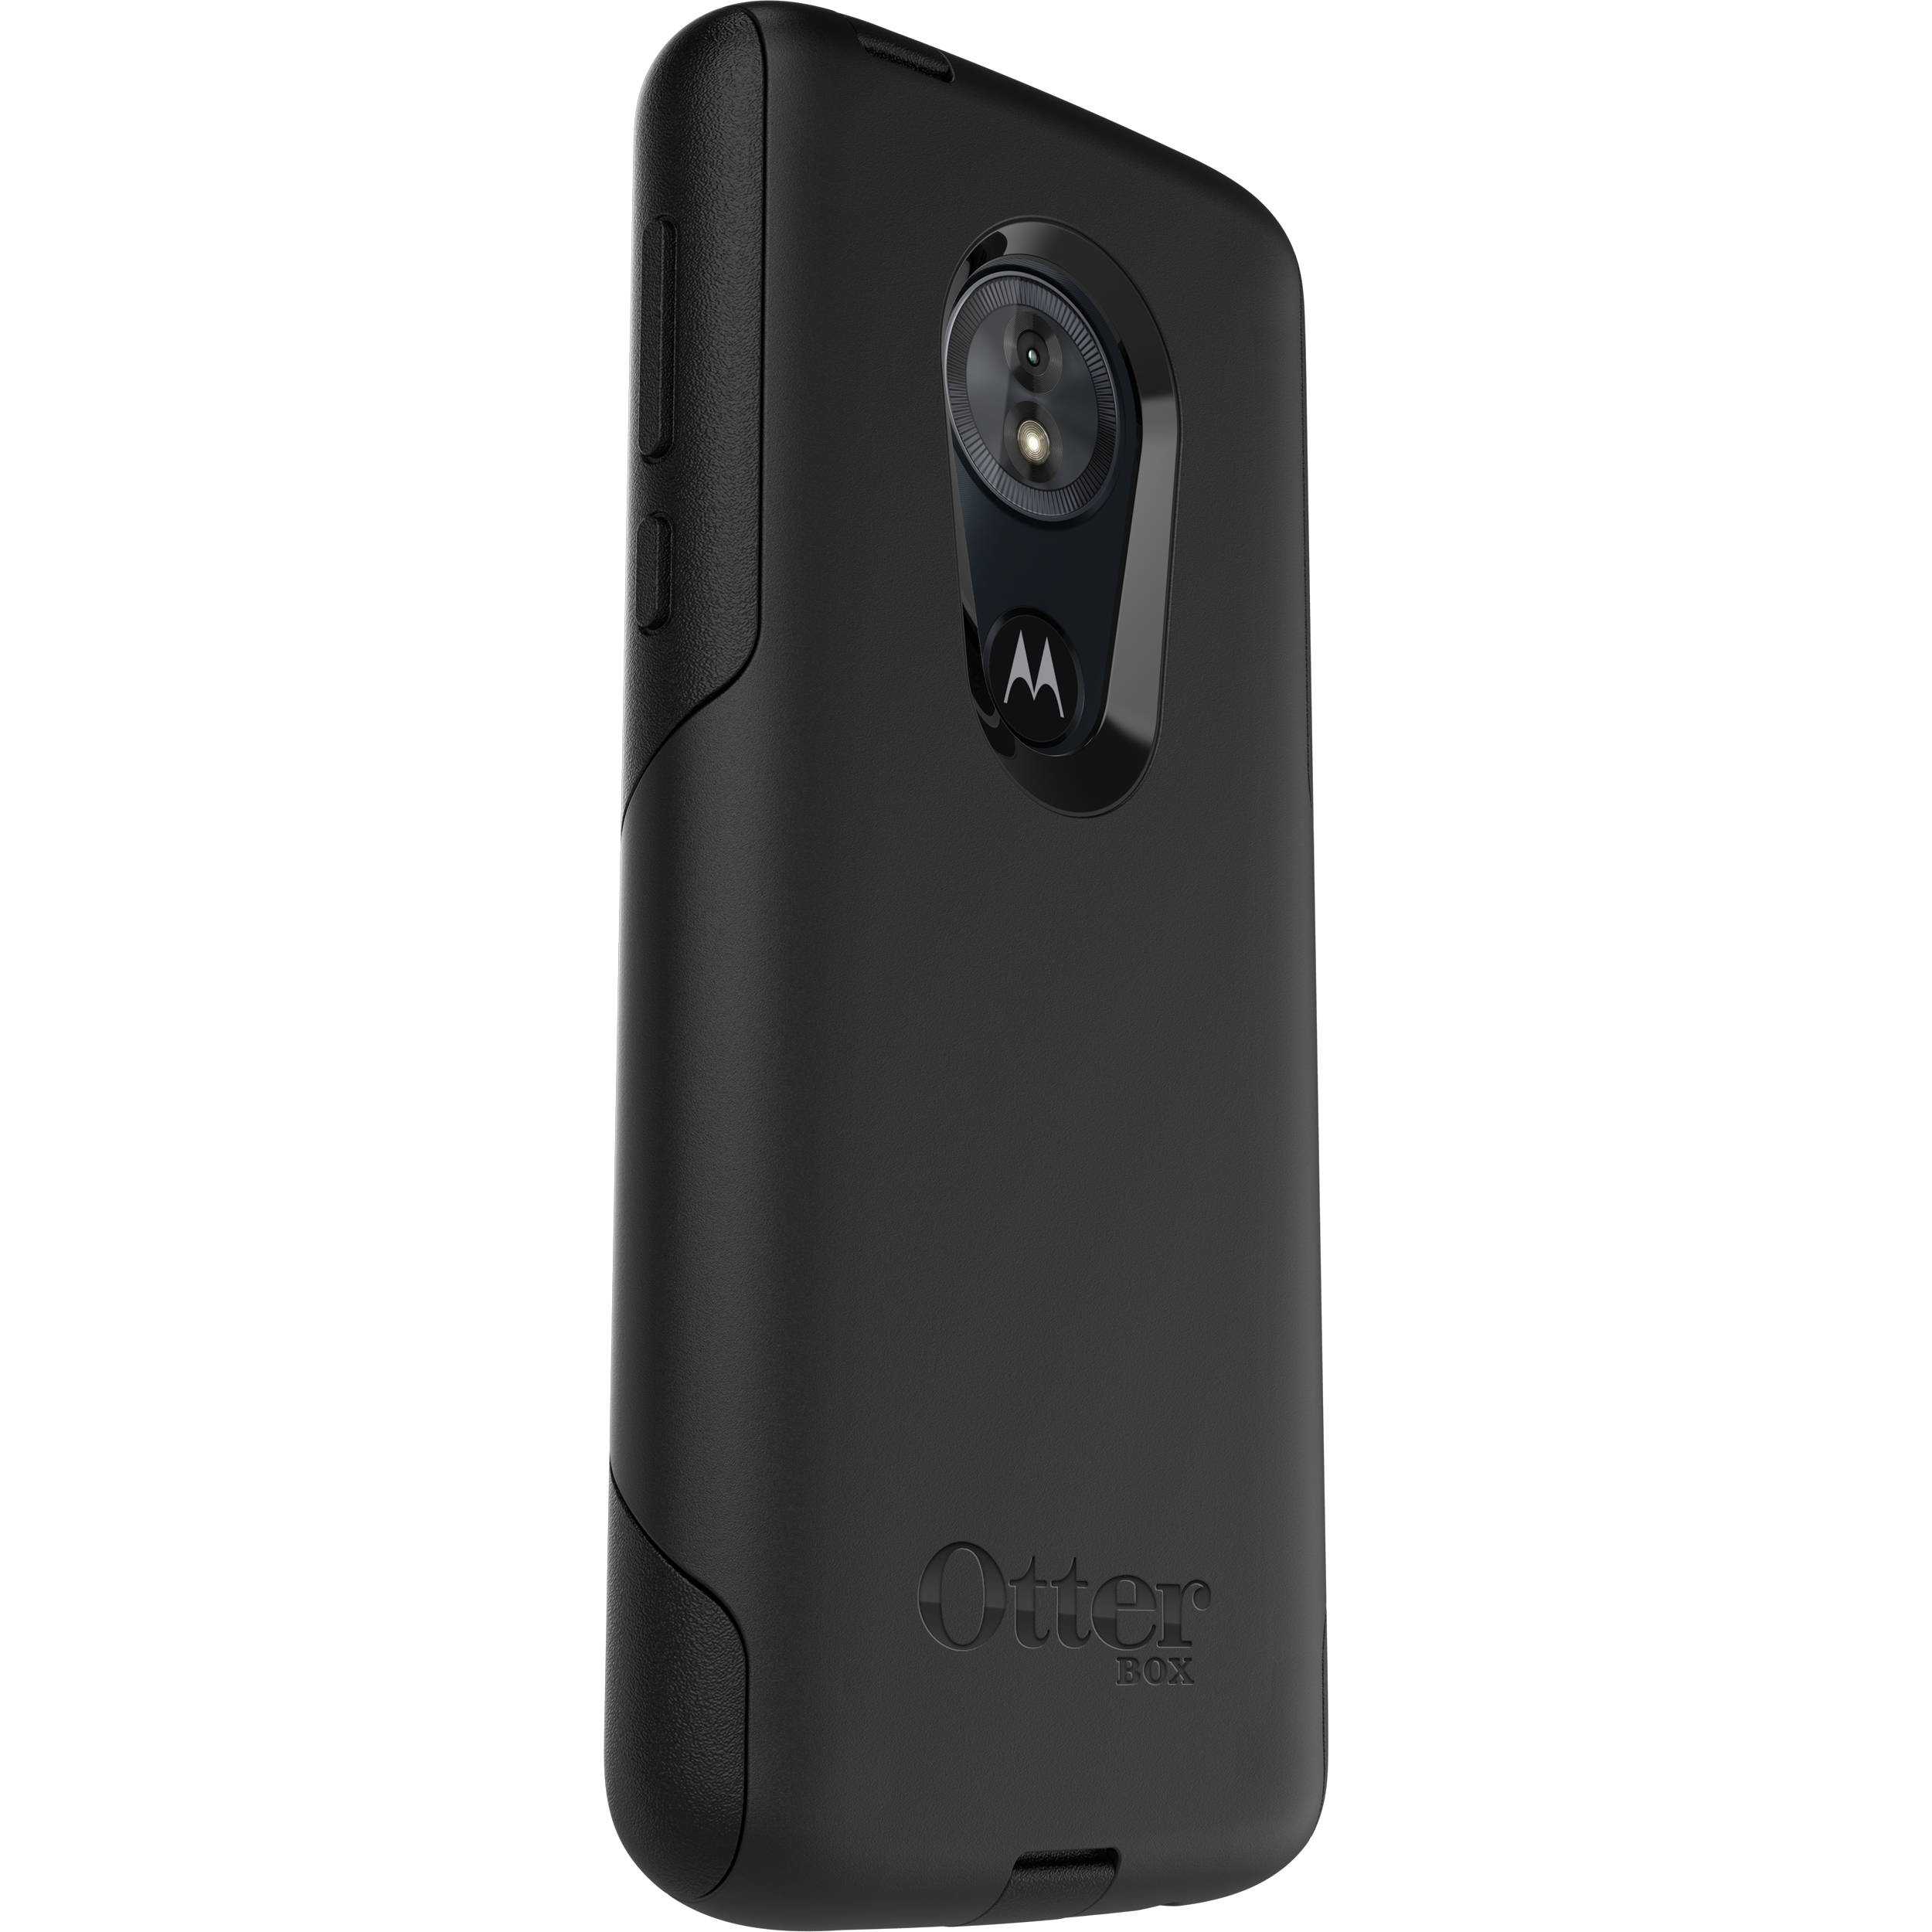 OtterBox Commuter Case for Moto G6 Play (Black)